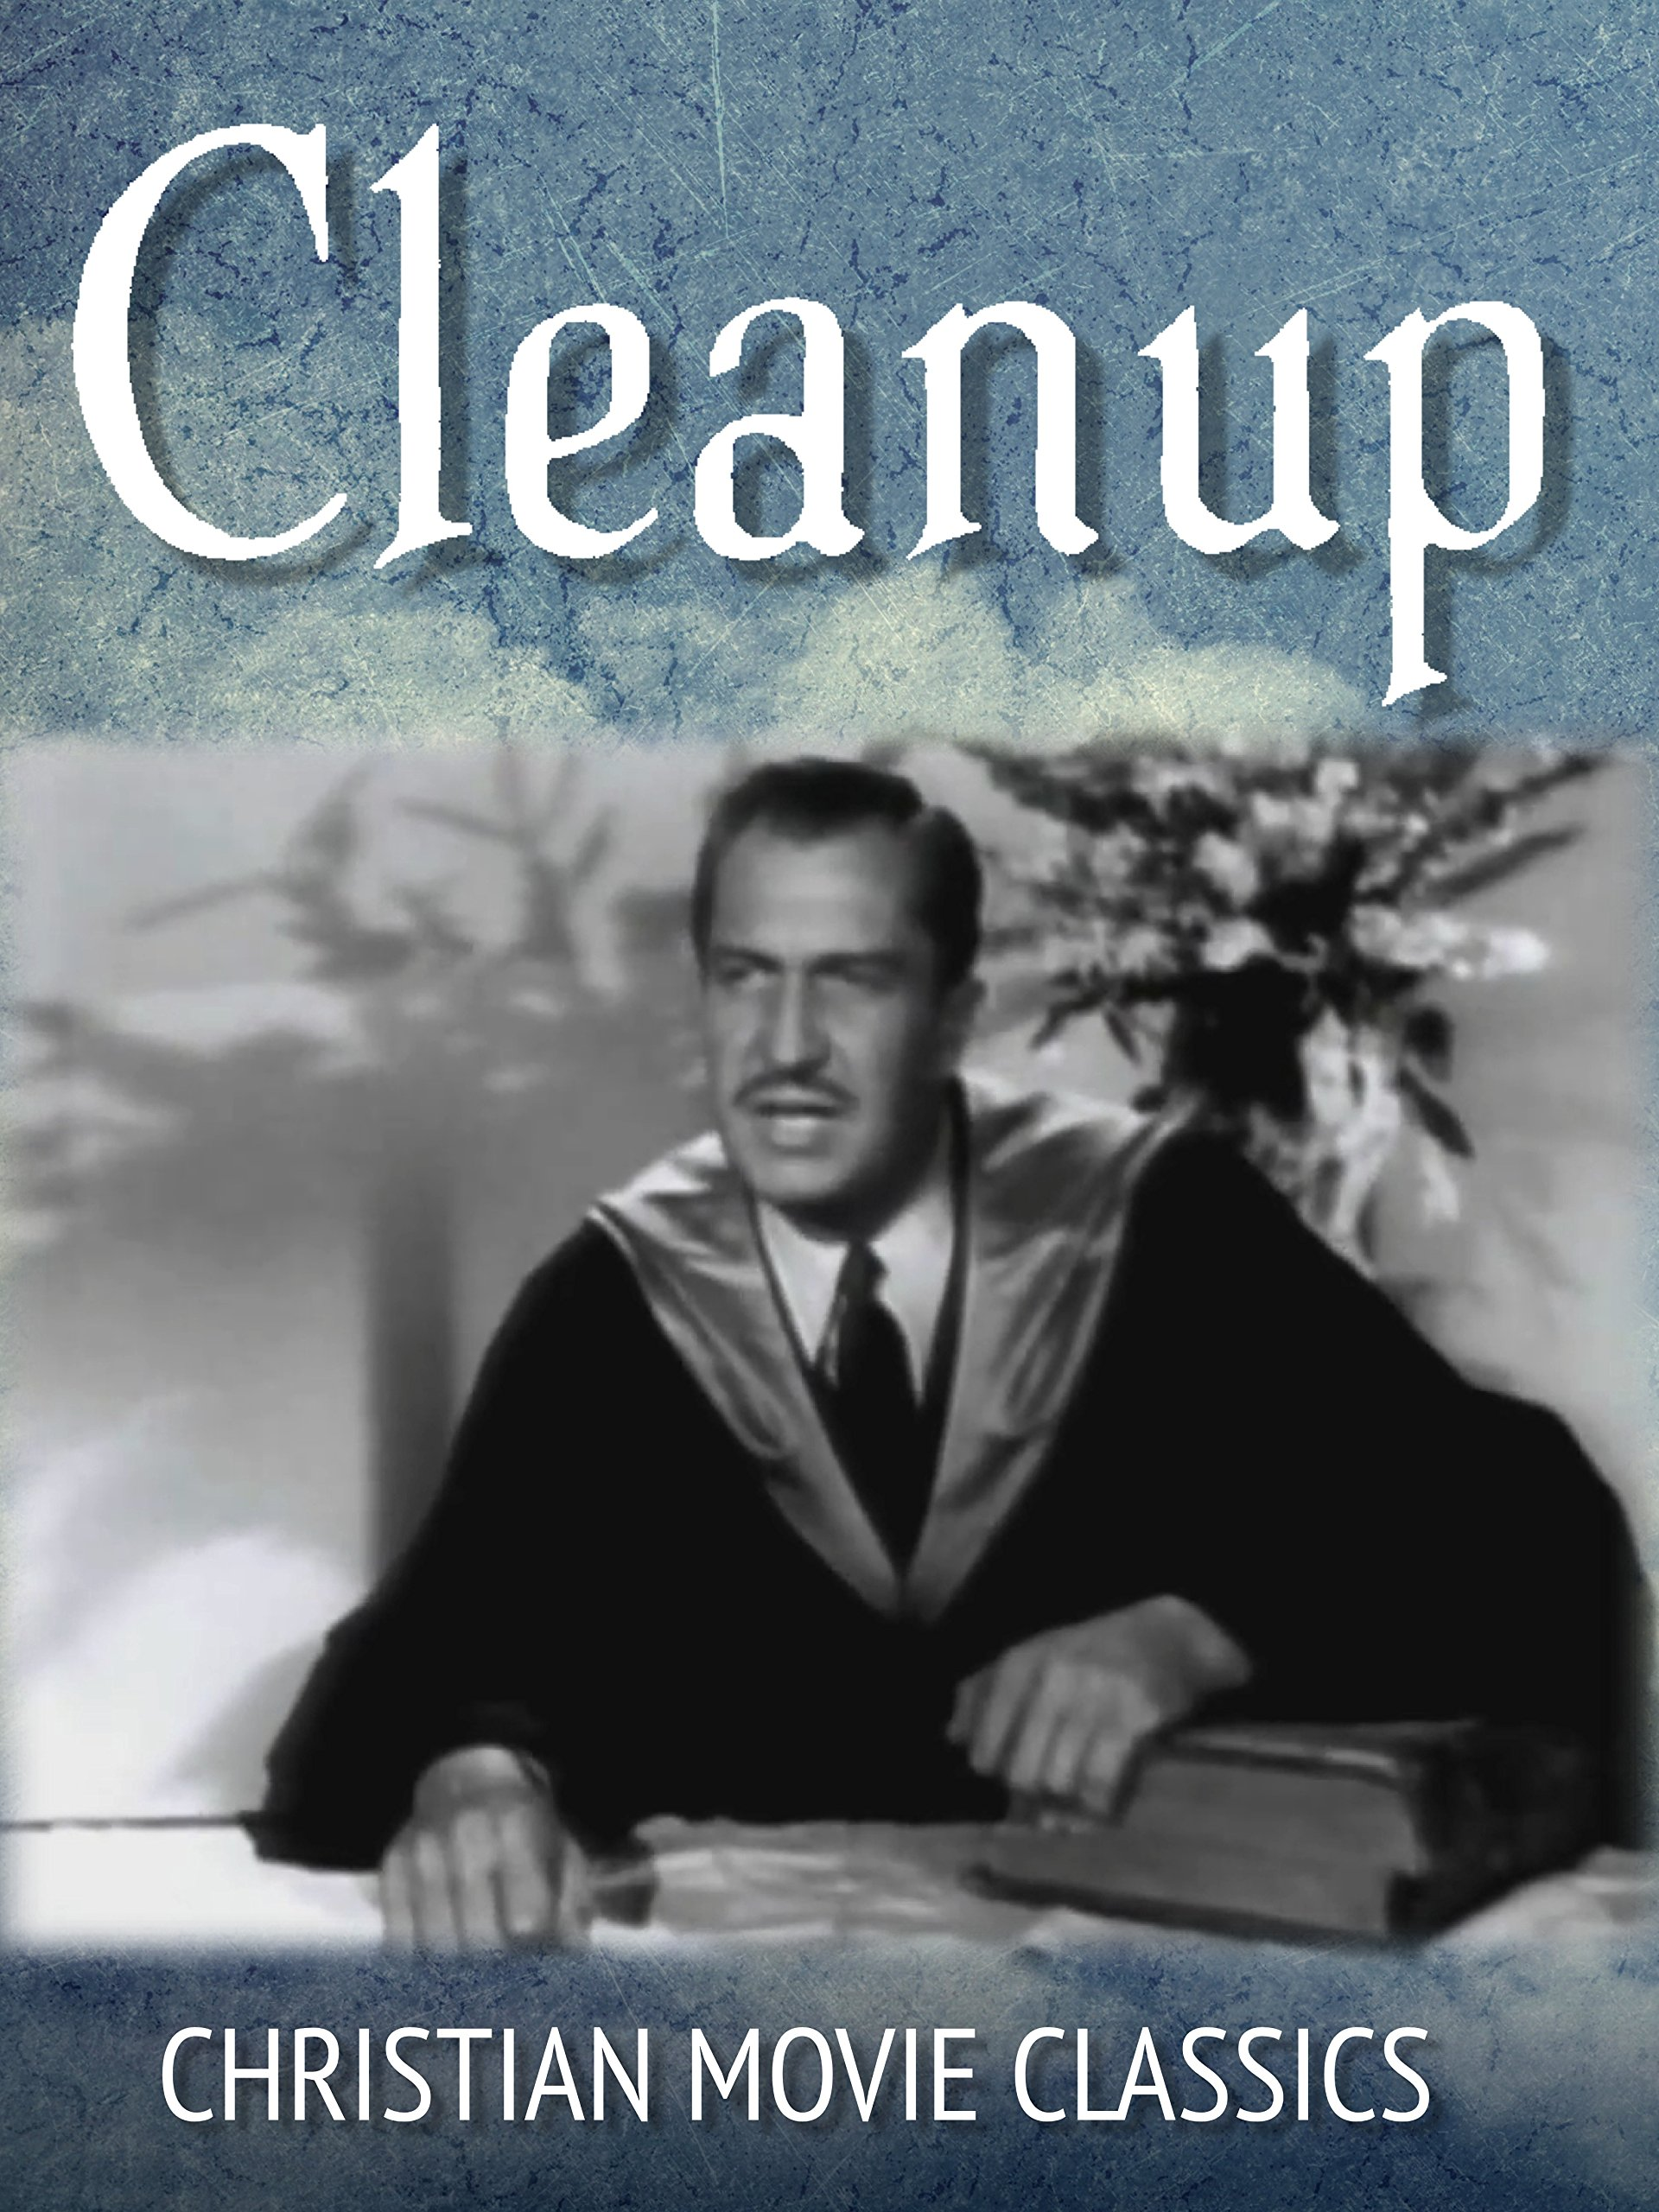 Cleanup: Christian Movie Classics